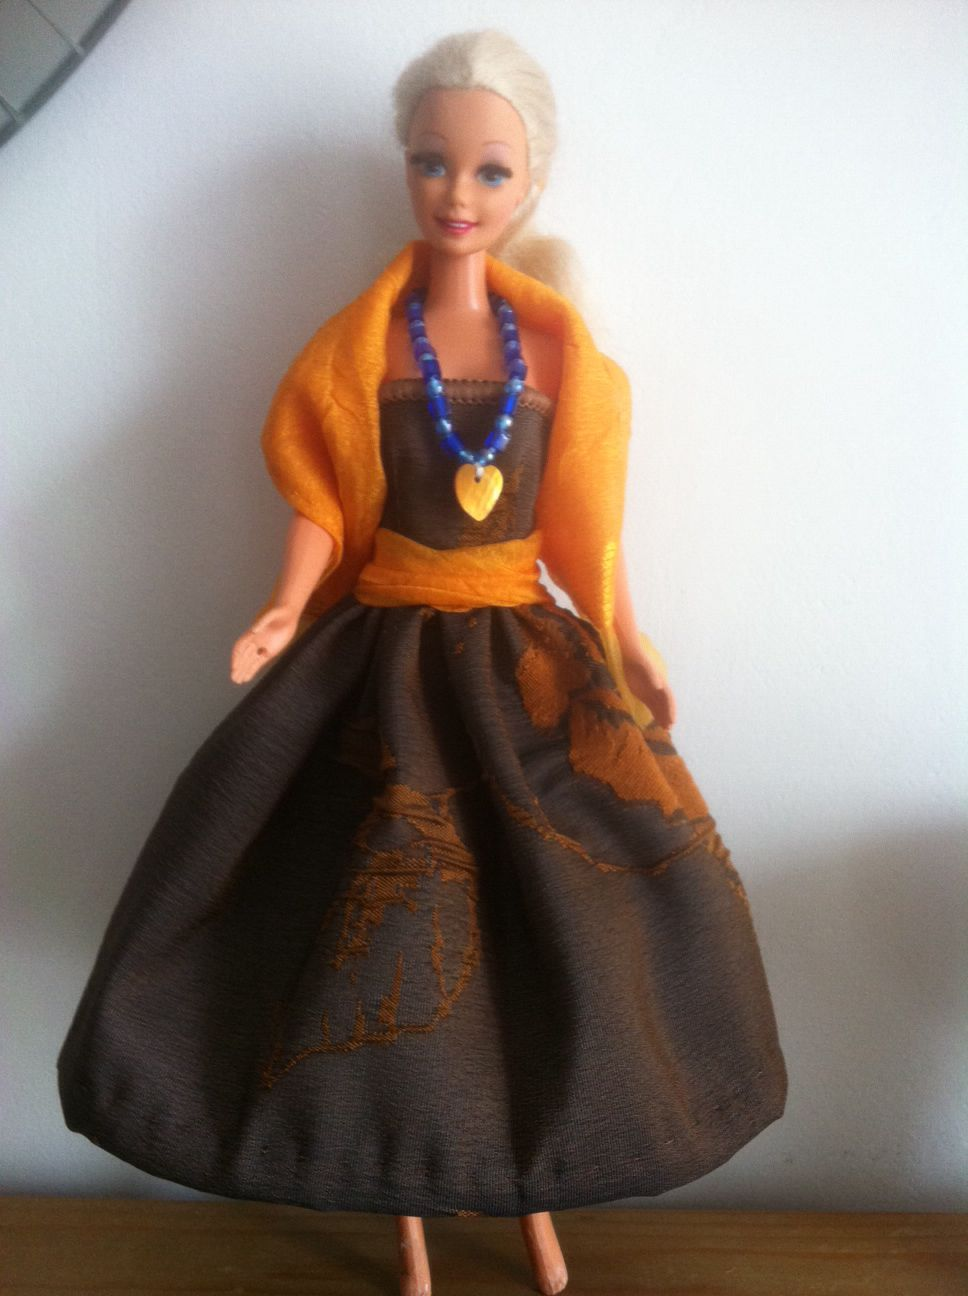 Barbie inspiration C. Lacroix